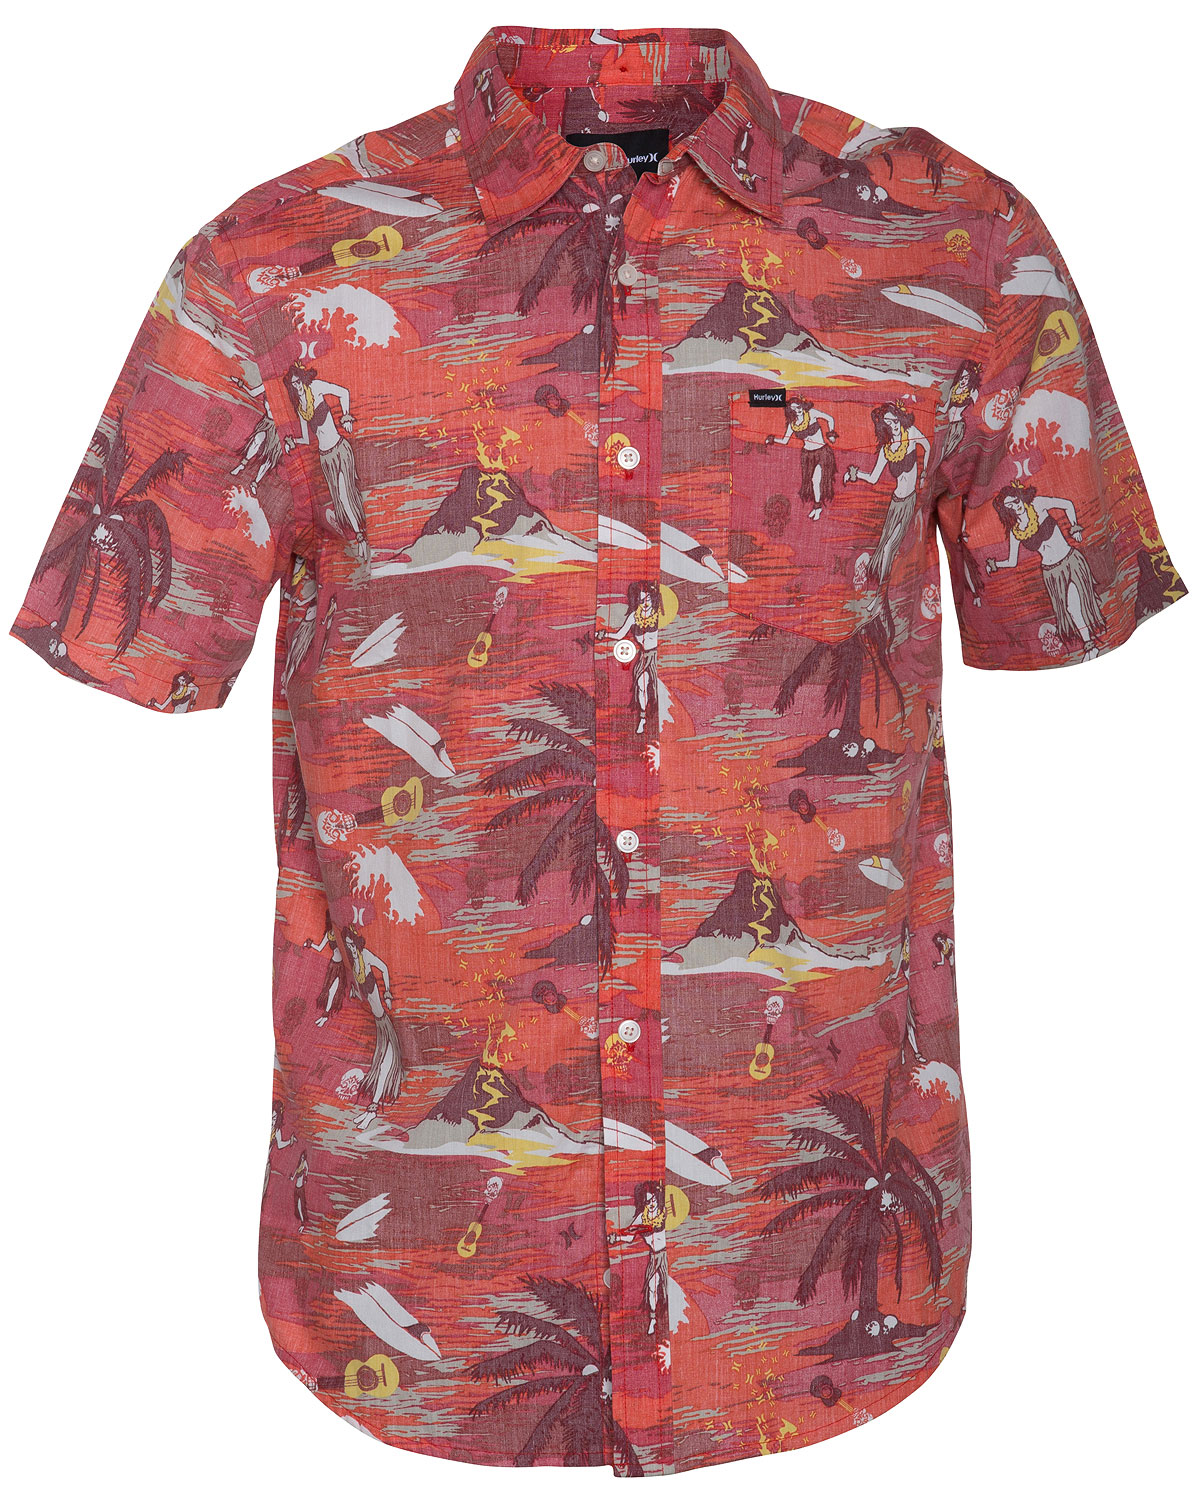 Surf Key Features of the Hurley Suarez S/S Shirt: Regular fit 60% cotton/40% polyester Push-through hurley floral print Single chest pocket Pearl button closure Colorbar button at back collar - $31.95